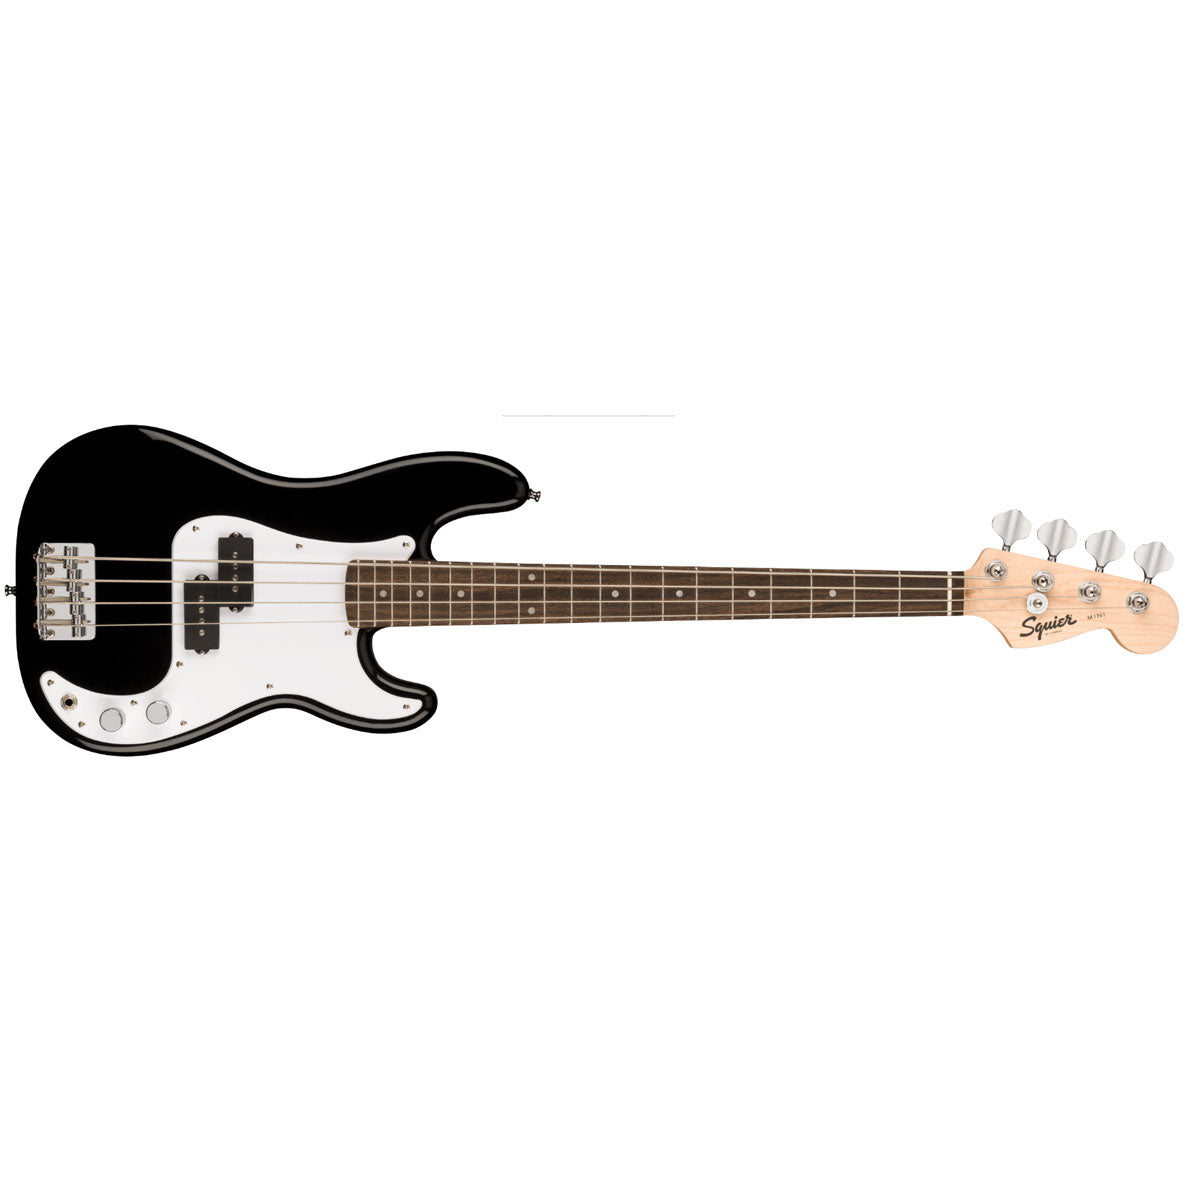 Fender Squier Mini Precision Bass Guitar 3/4 Size Black - 0370127506